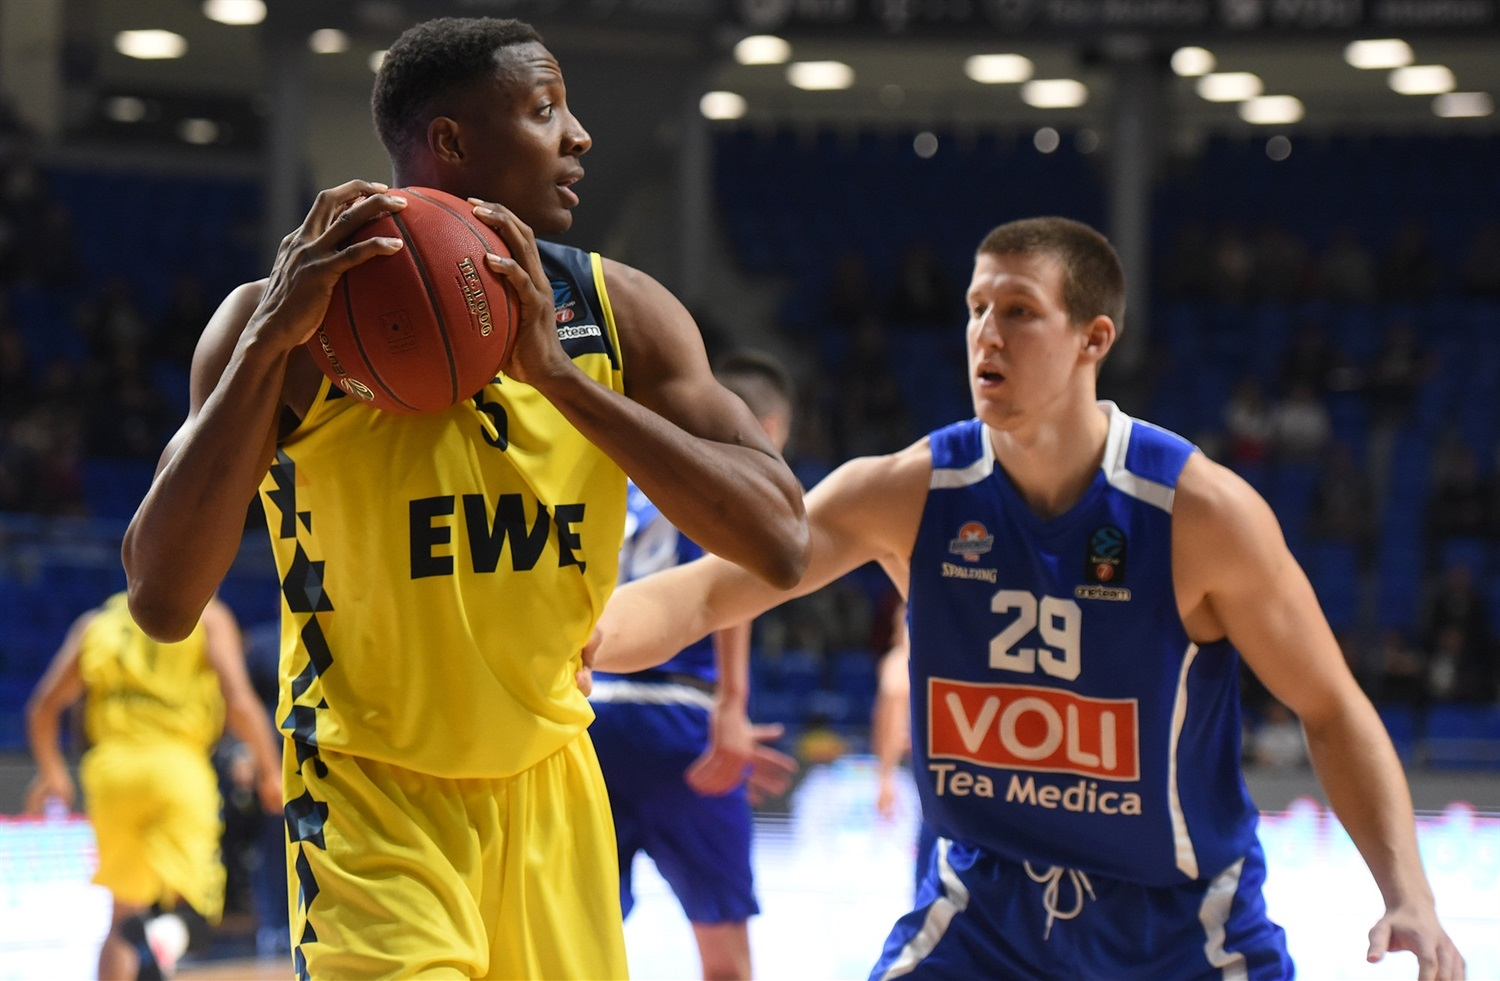 Justin Sears - EWE Baskets Oldenburg (photo Buducnost) - EC19